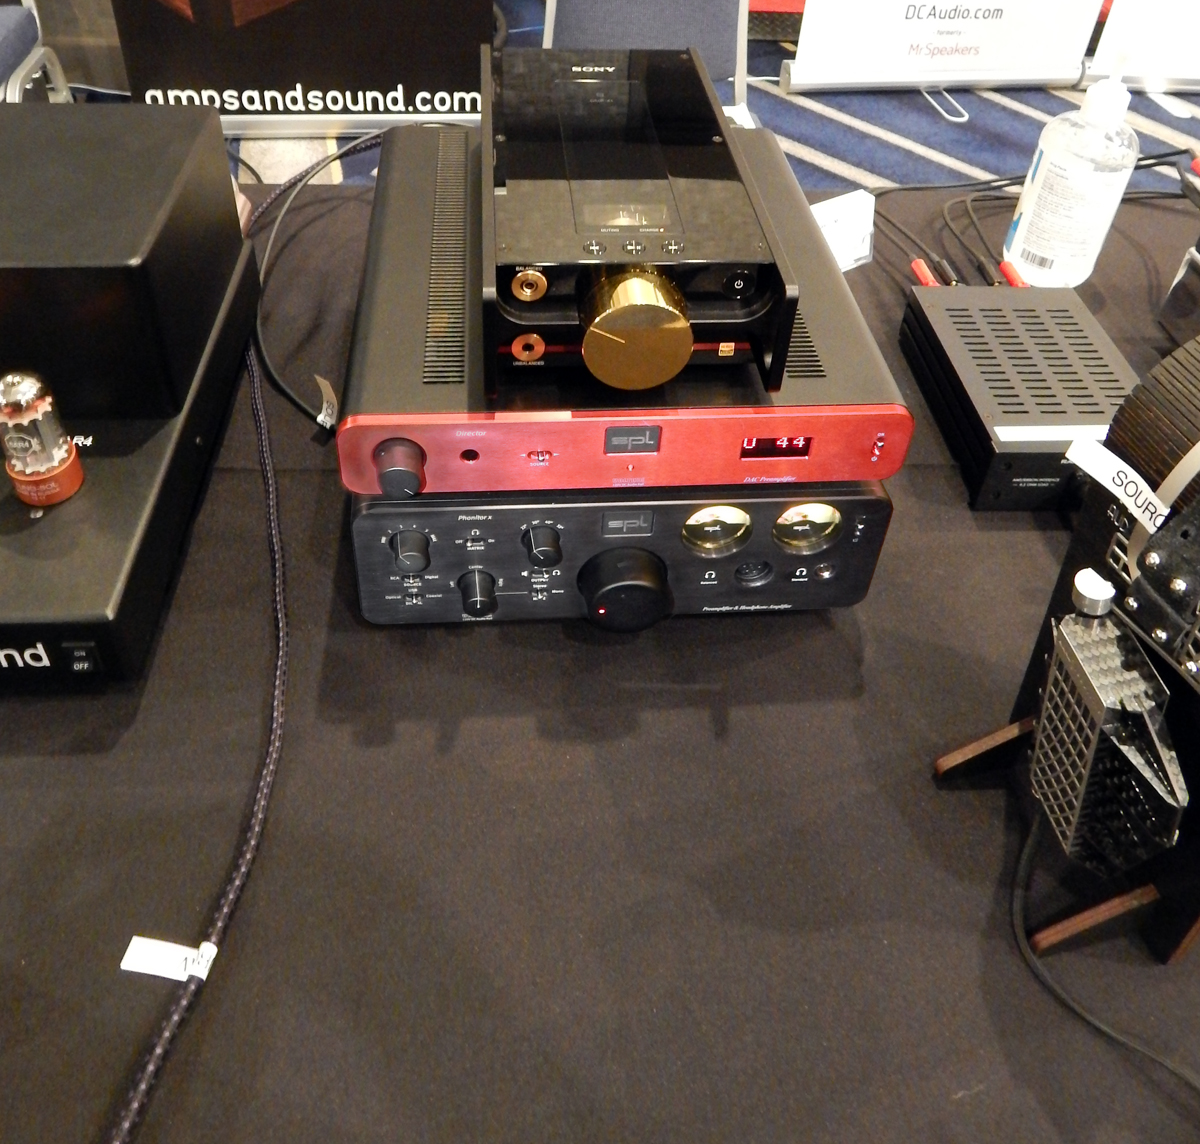 Sony DMP-Z1, SPL Director DAC Preamp, SPL Phonitor 2 Headphone Amplifier, RAAL|Requisite SR1a Earfield Monitors CanJam SoCal 2021